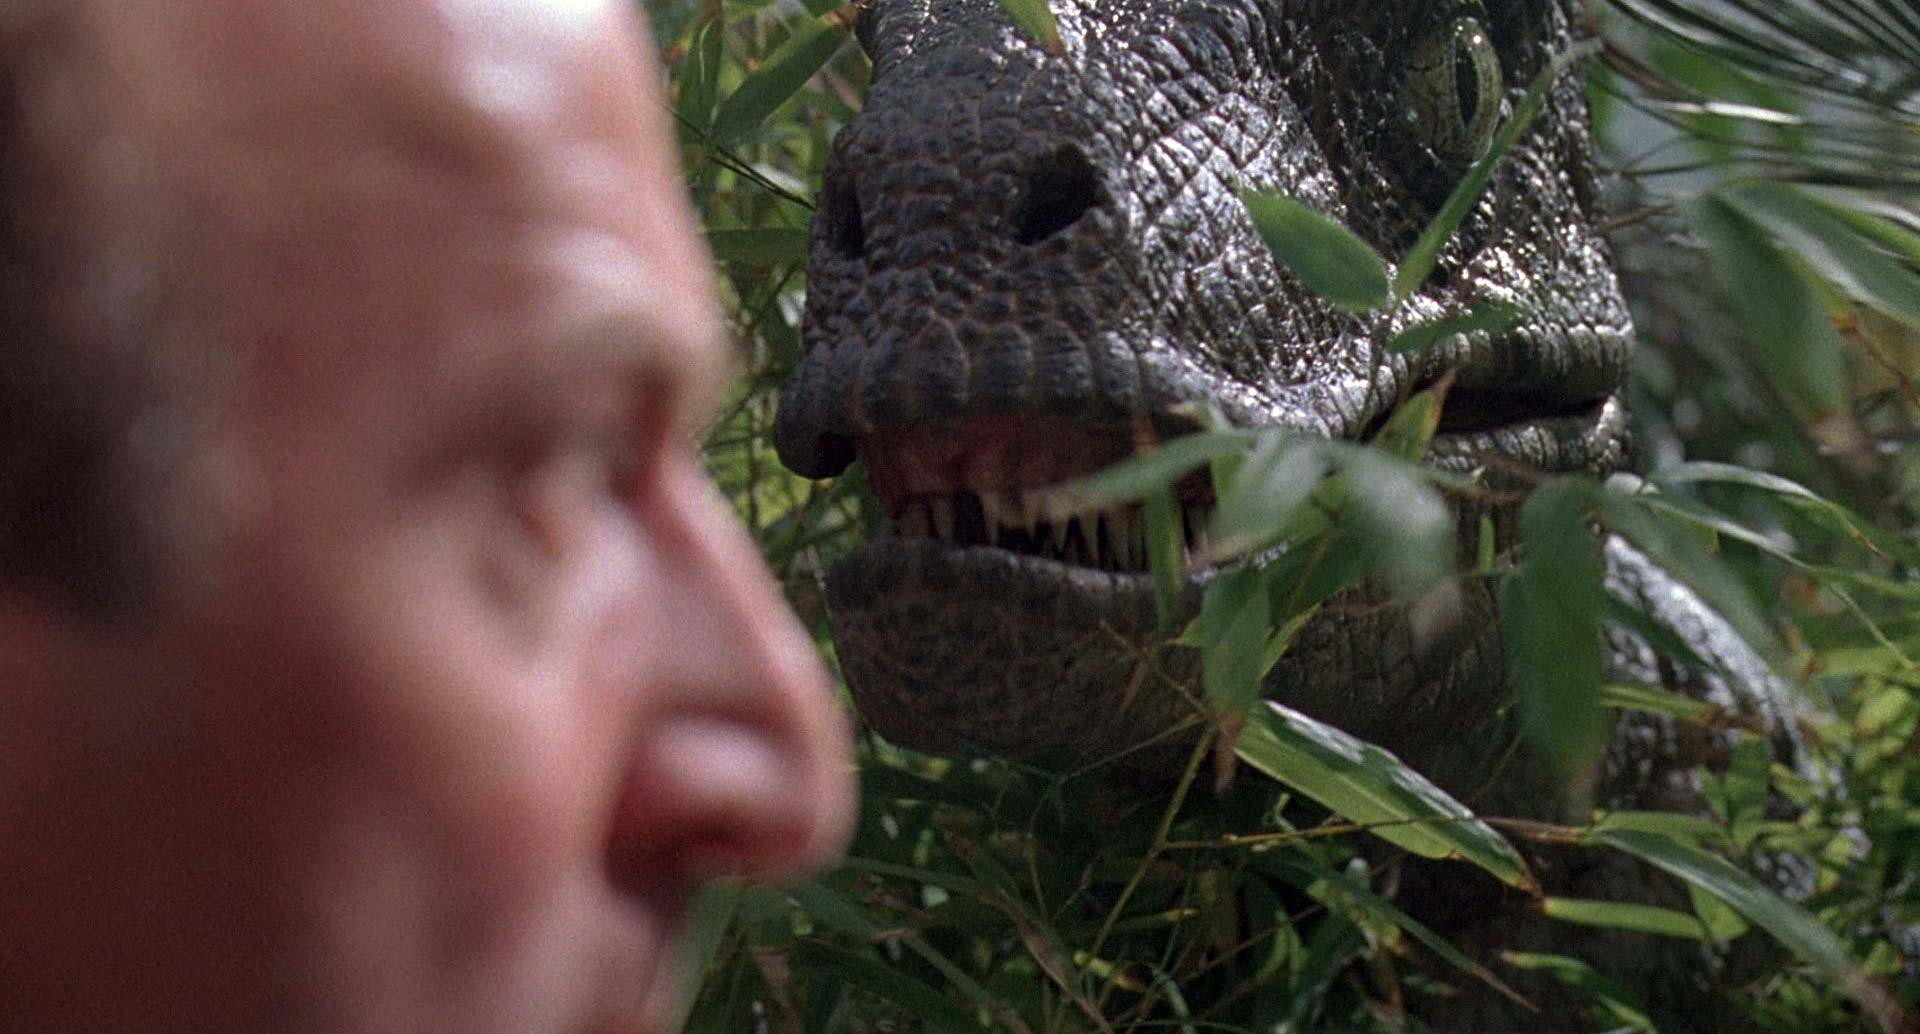 Jurassic Park's velociraptors sound a lot like mating ...